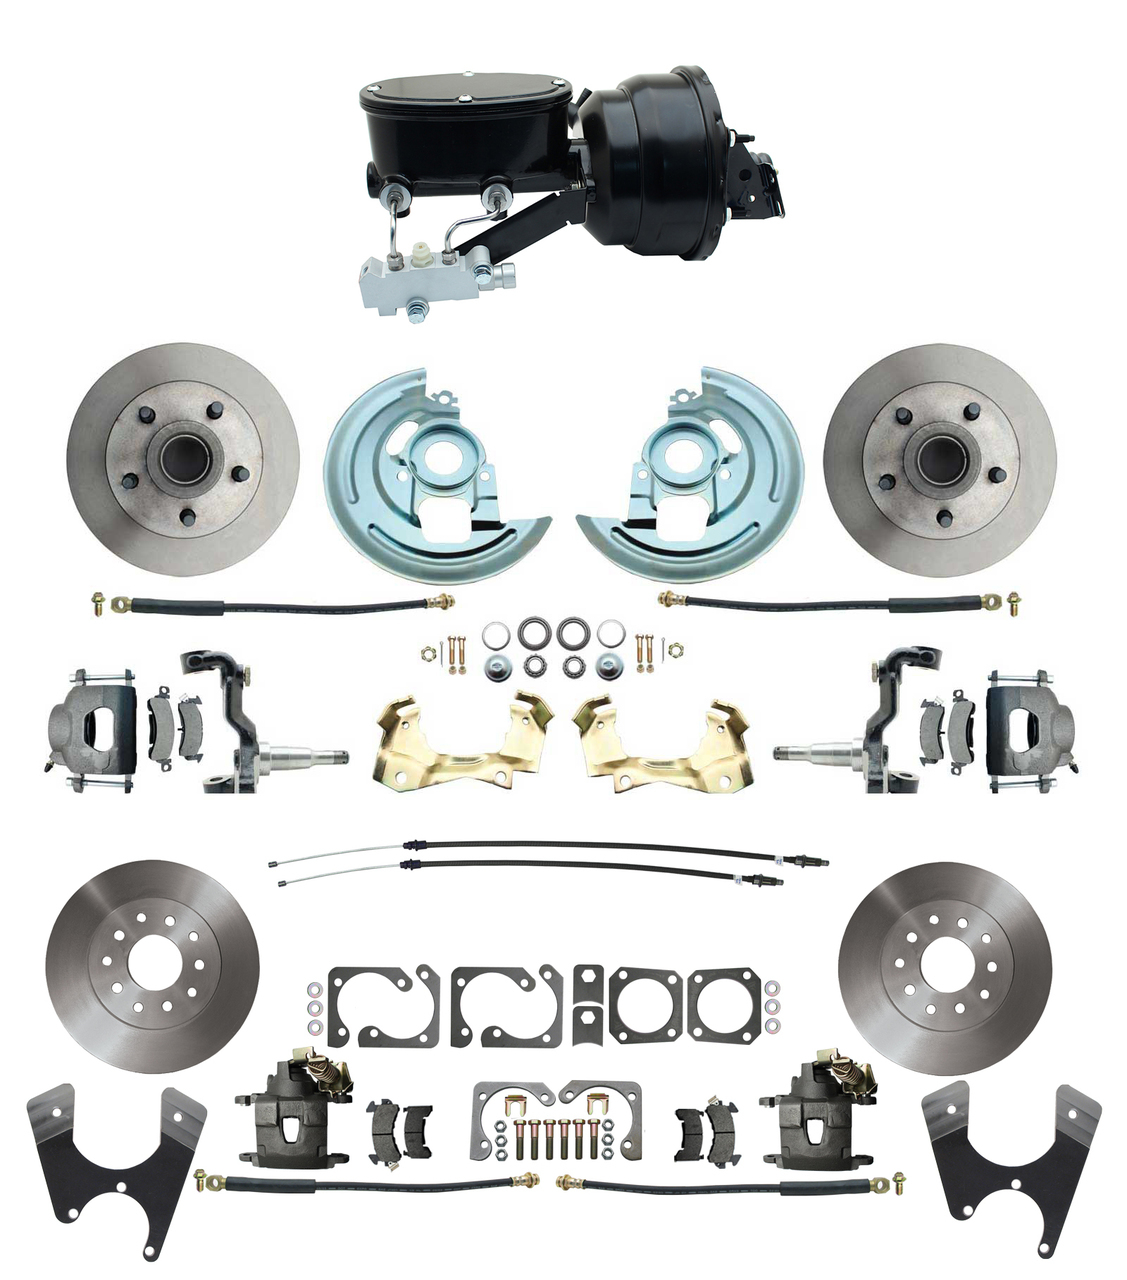 1967-1969 Camaro/ Firebird & 1968-1974 Chevy Nova Front & Rear Power Disc Brake Conversion Kit Standard Rotors W/ Wilwood Style 8 Dual Powder Coated Black Booster Kit